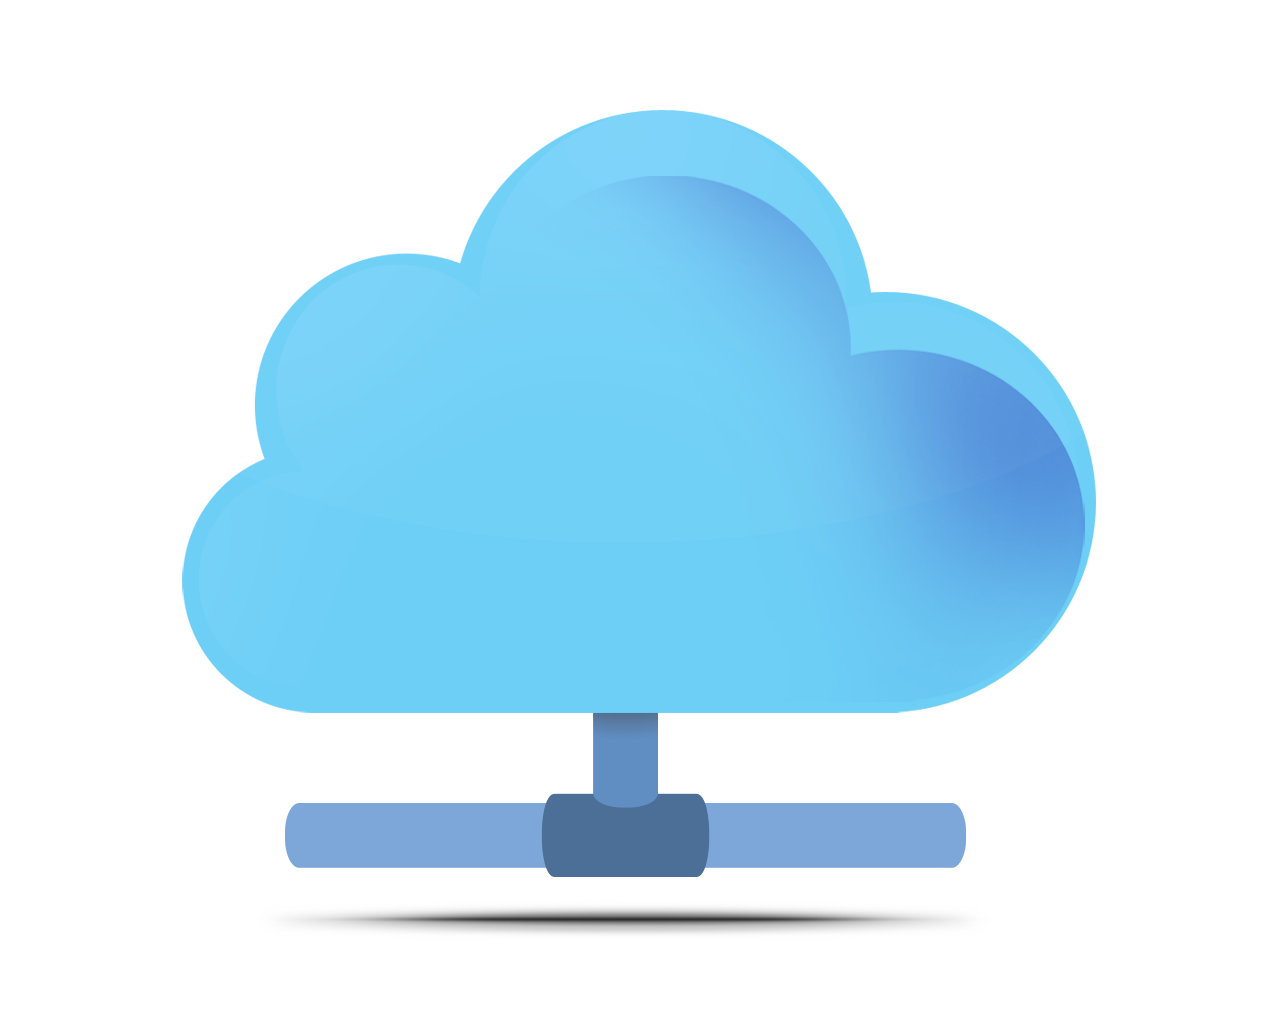 Cloud Computing – Definición sencilla